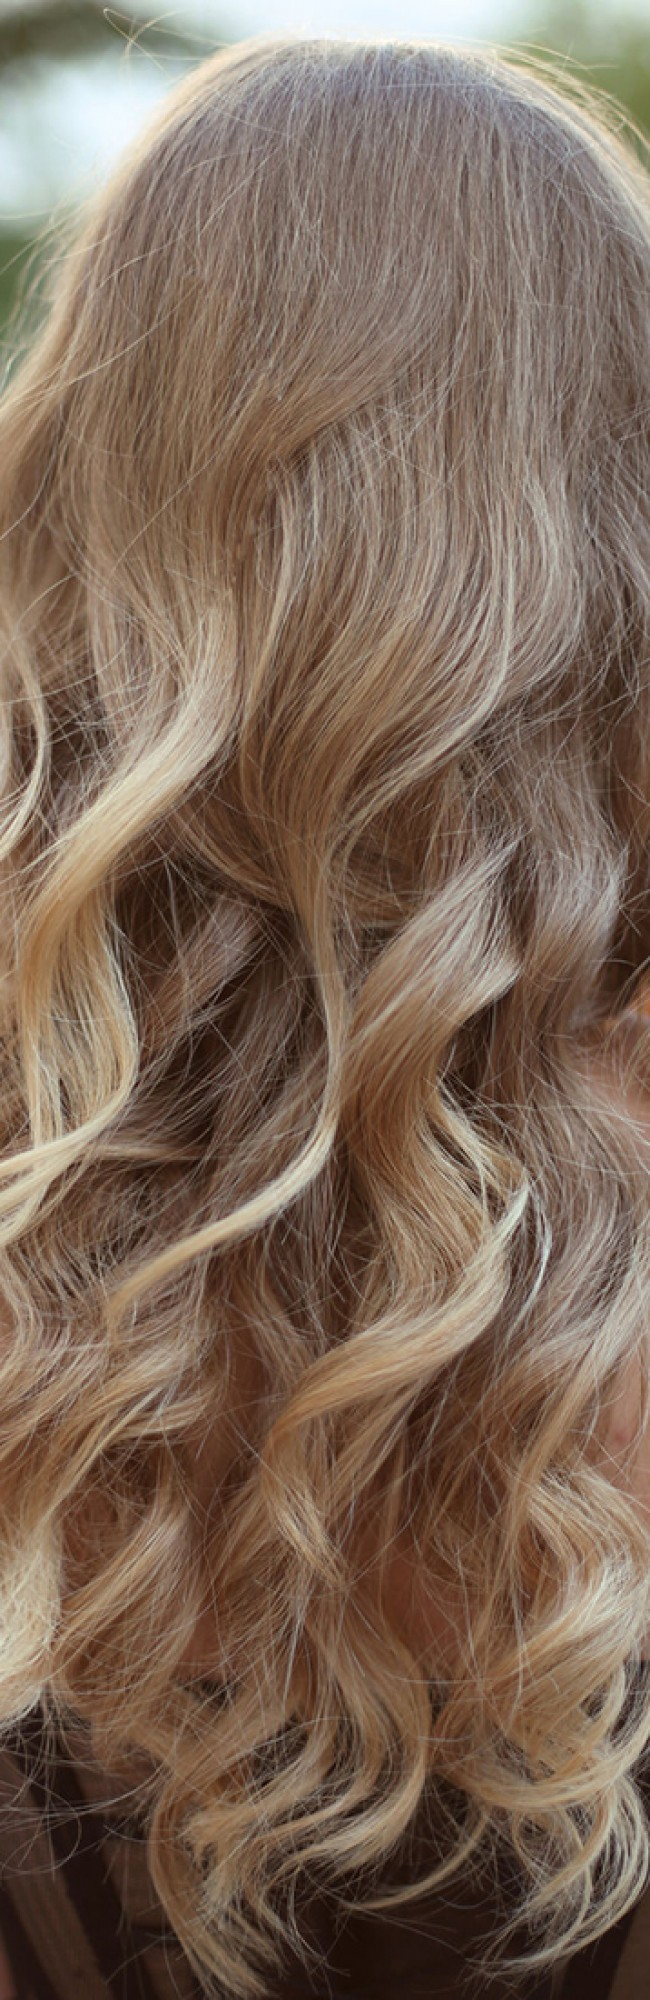 Balayage for Every Hair Style!